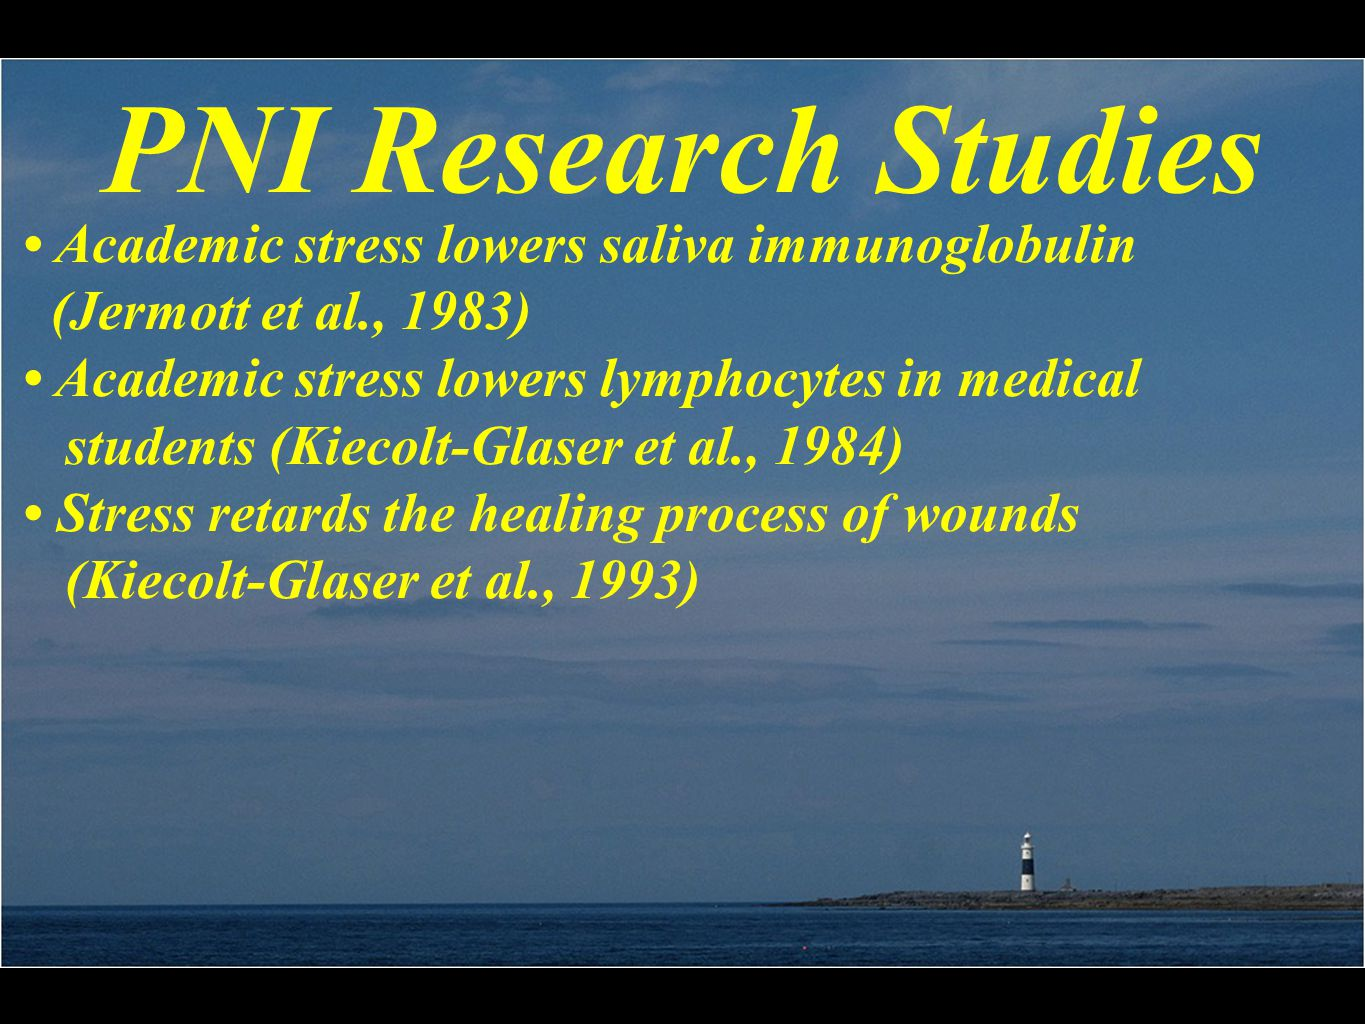 PNI Research Studies Academic stress lowers saliva immunoglobulin (Jermott et al., 1983) Academic stress lowers lymphocytes in medical students (Kiecolt-Glaser et al., 1984) Stress retards the healing process of wounds (Kiecolt-Glaser et al., 1993)